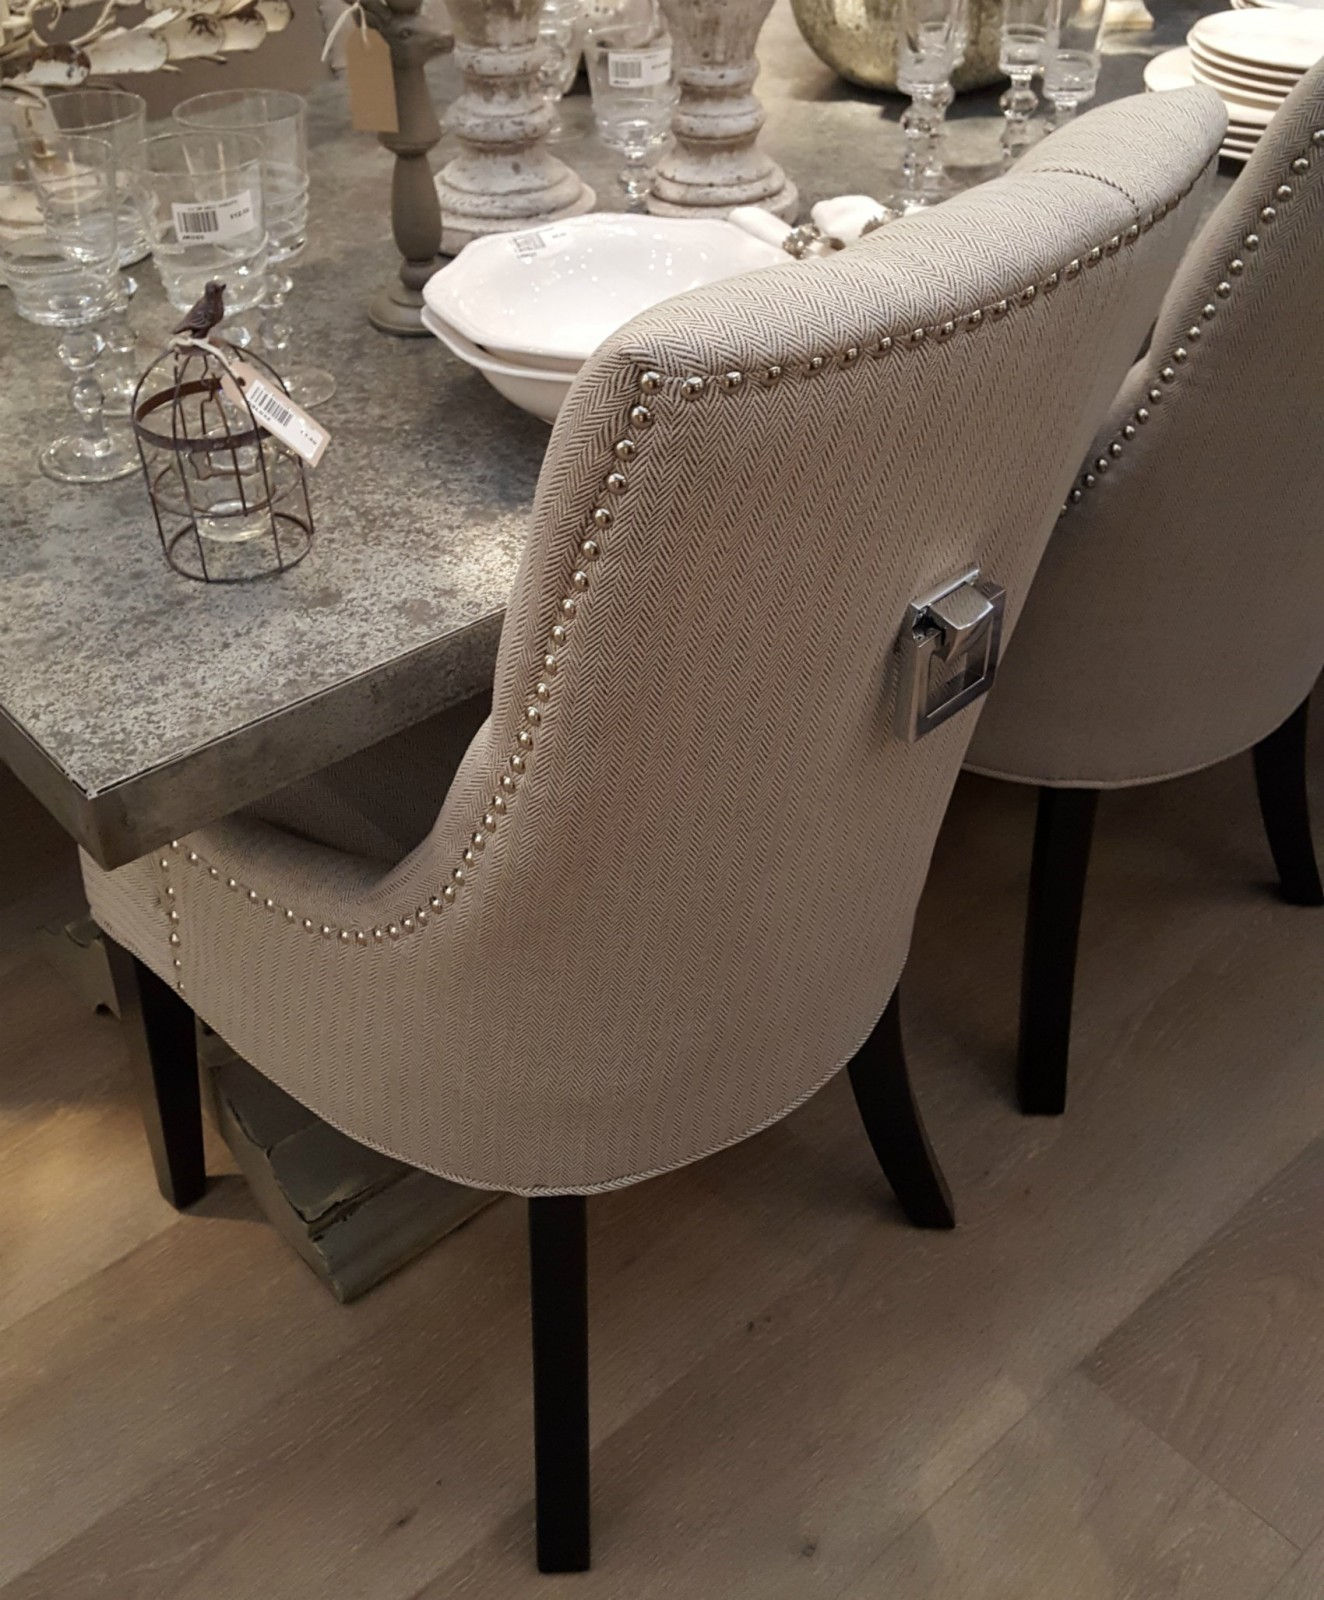 home goods kitchen table and chairs phillips collection seat belt chair flavia dining furniture - la maison chic luxury interiors